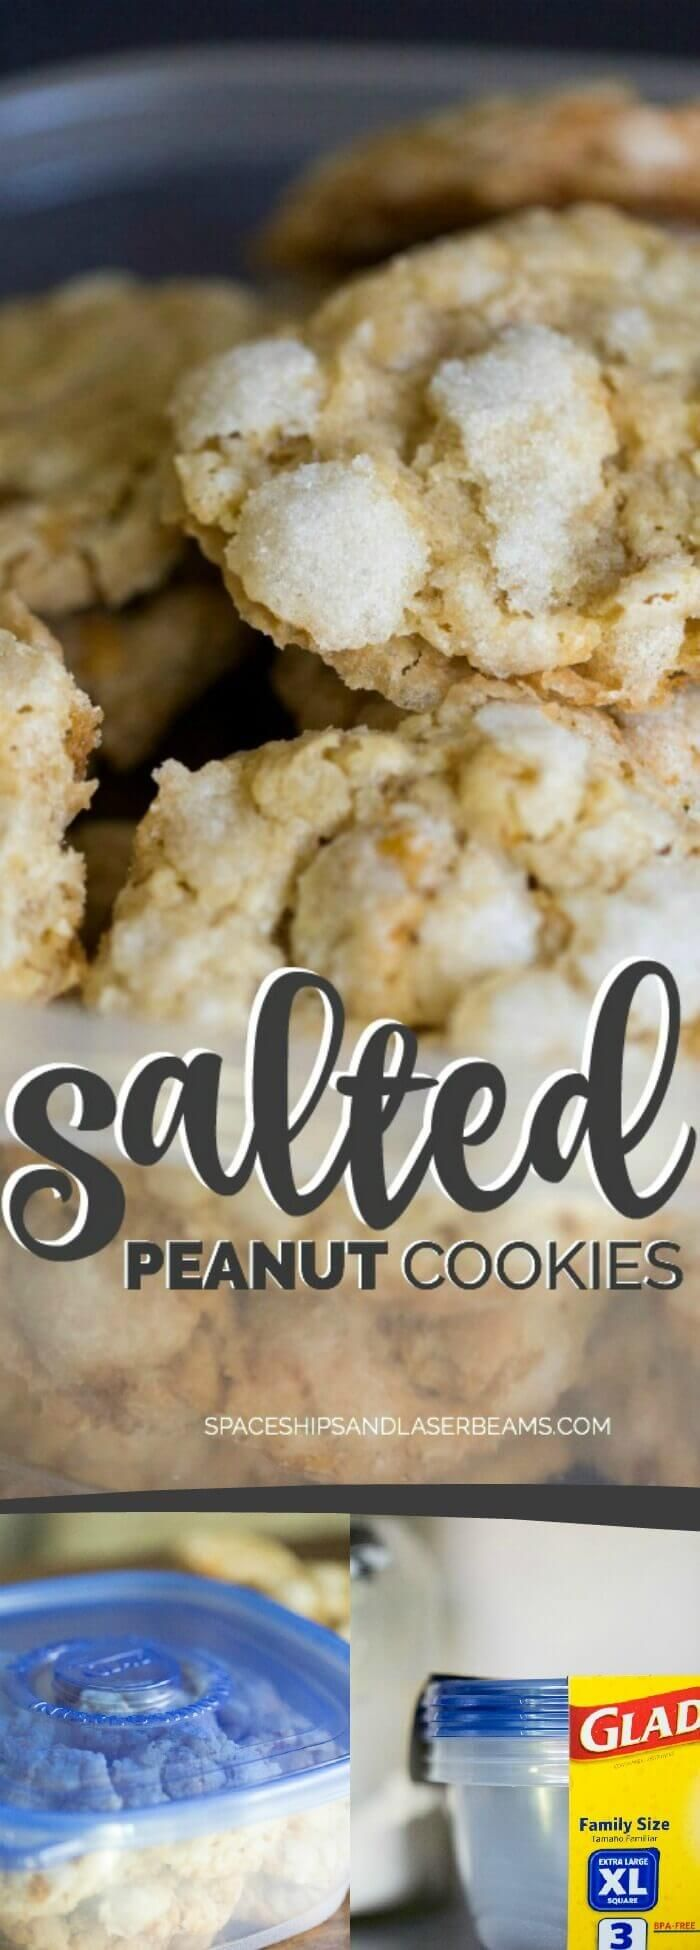 Salted Peanut Cookies via @spaceshipslb #Glad2WasteLess @gladproducts #ad